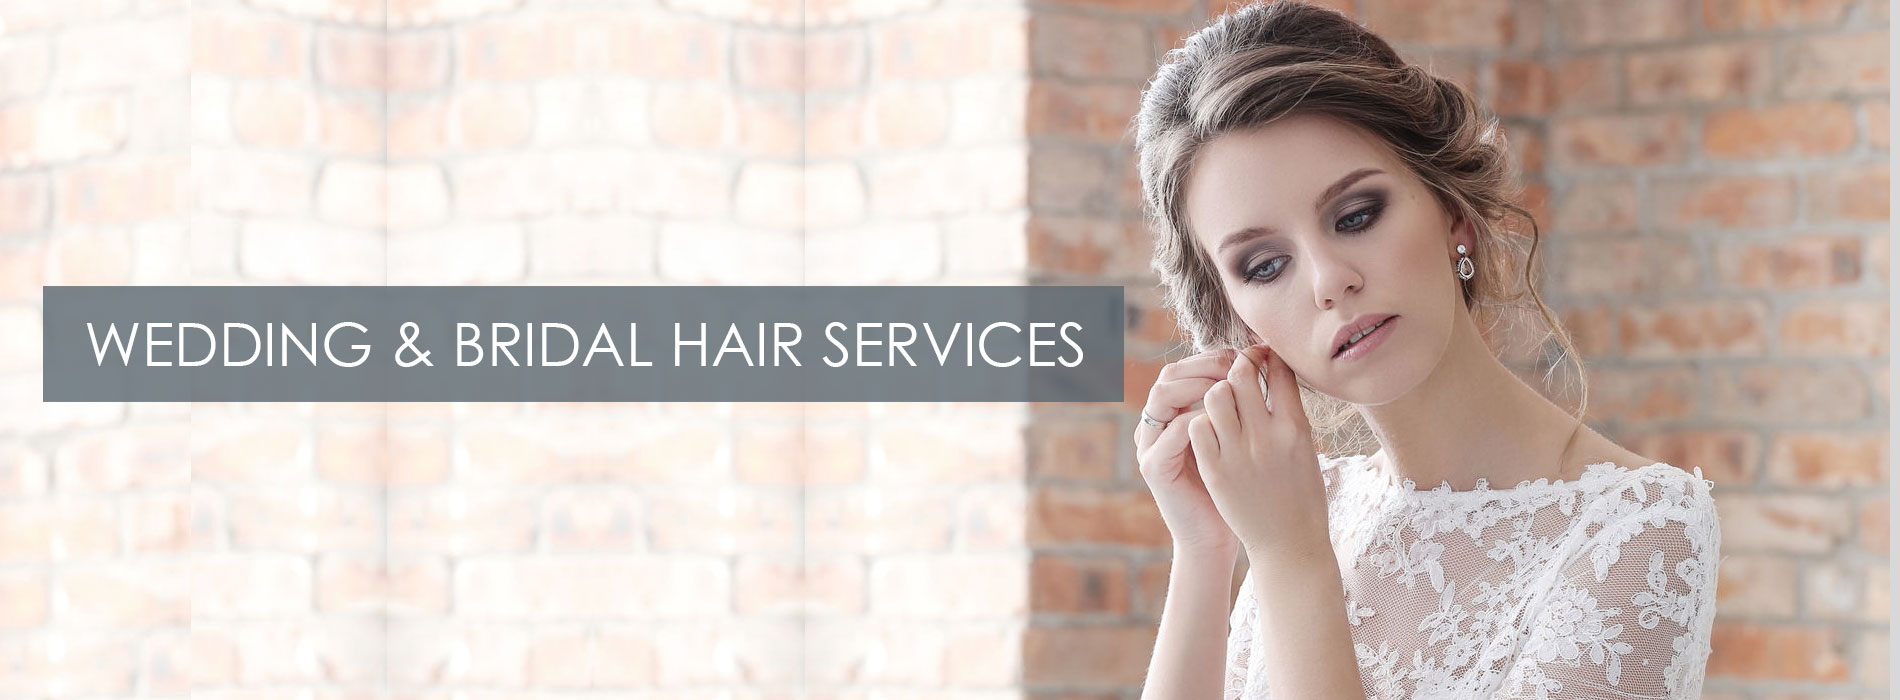 Wedding-&-Bridal-Hair-Services